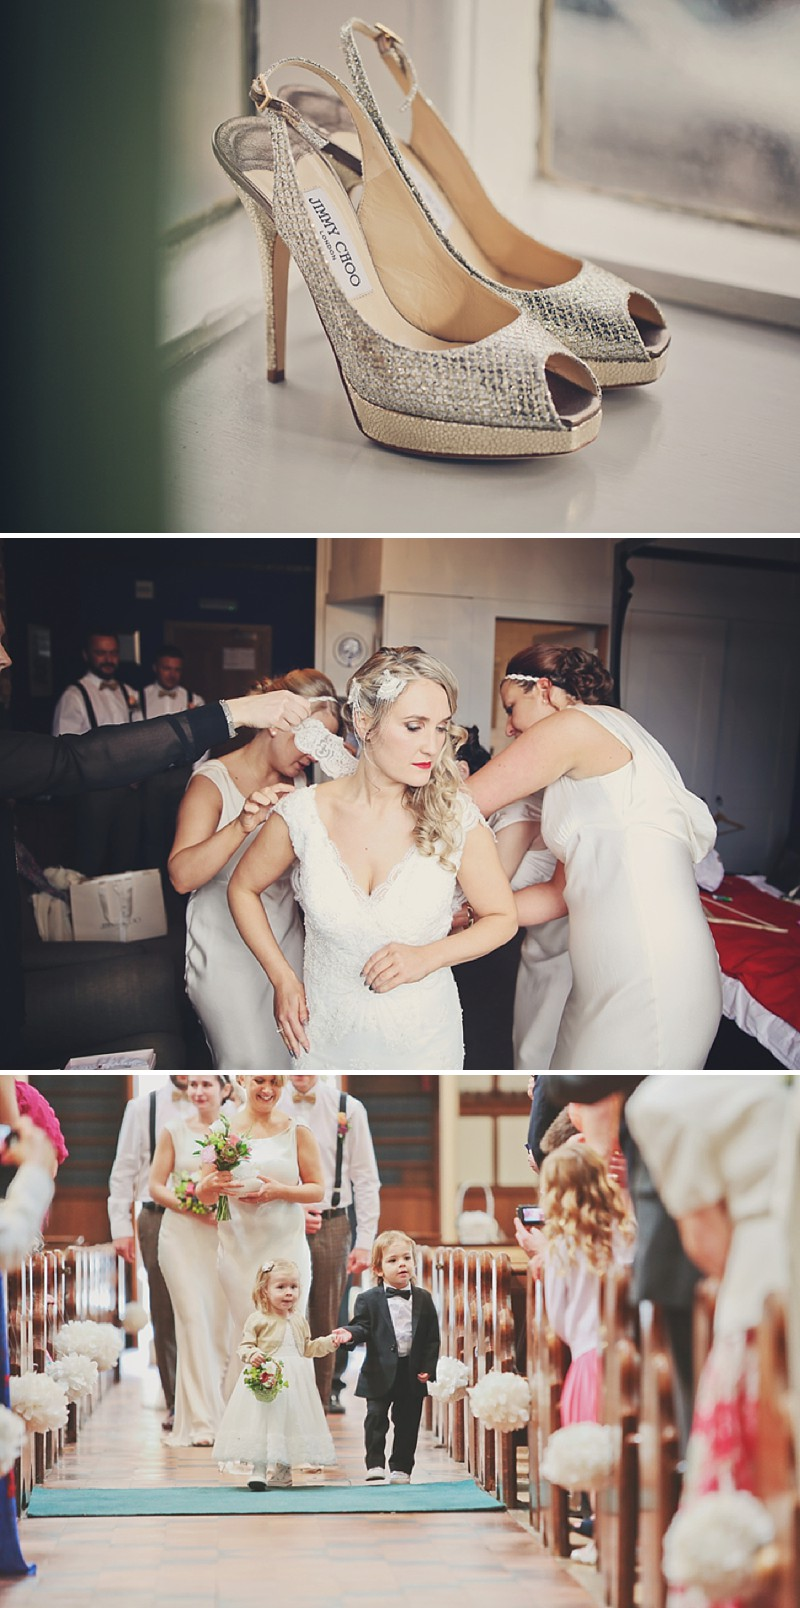 A 1920 vintage wedding at The Gatsby in Berkhamstead with a Lusan Mandongus dress and bridesmaids in ghost 0195 Cocktails, Chandeliers And 1920s Chic.